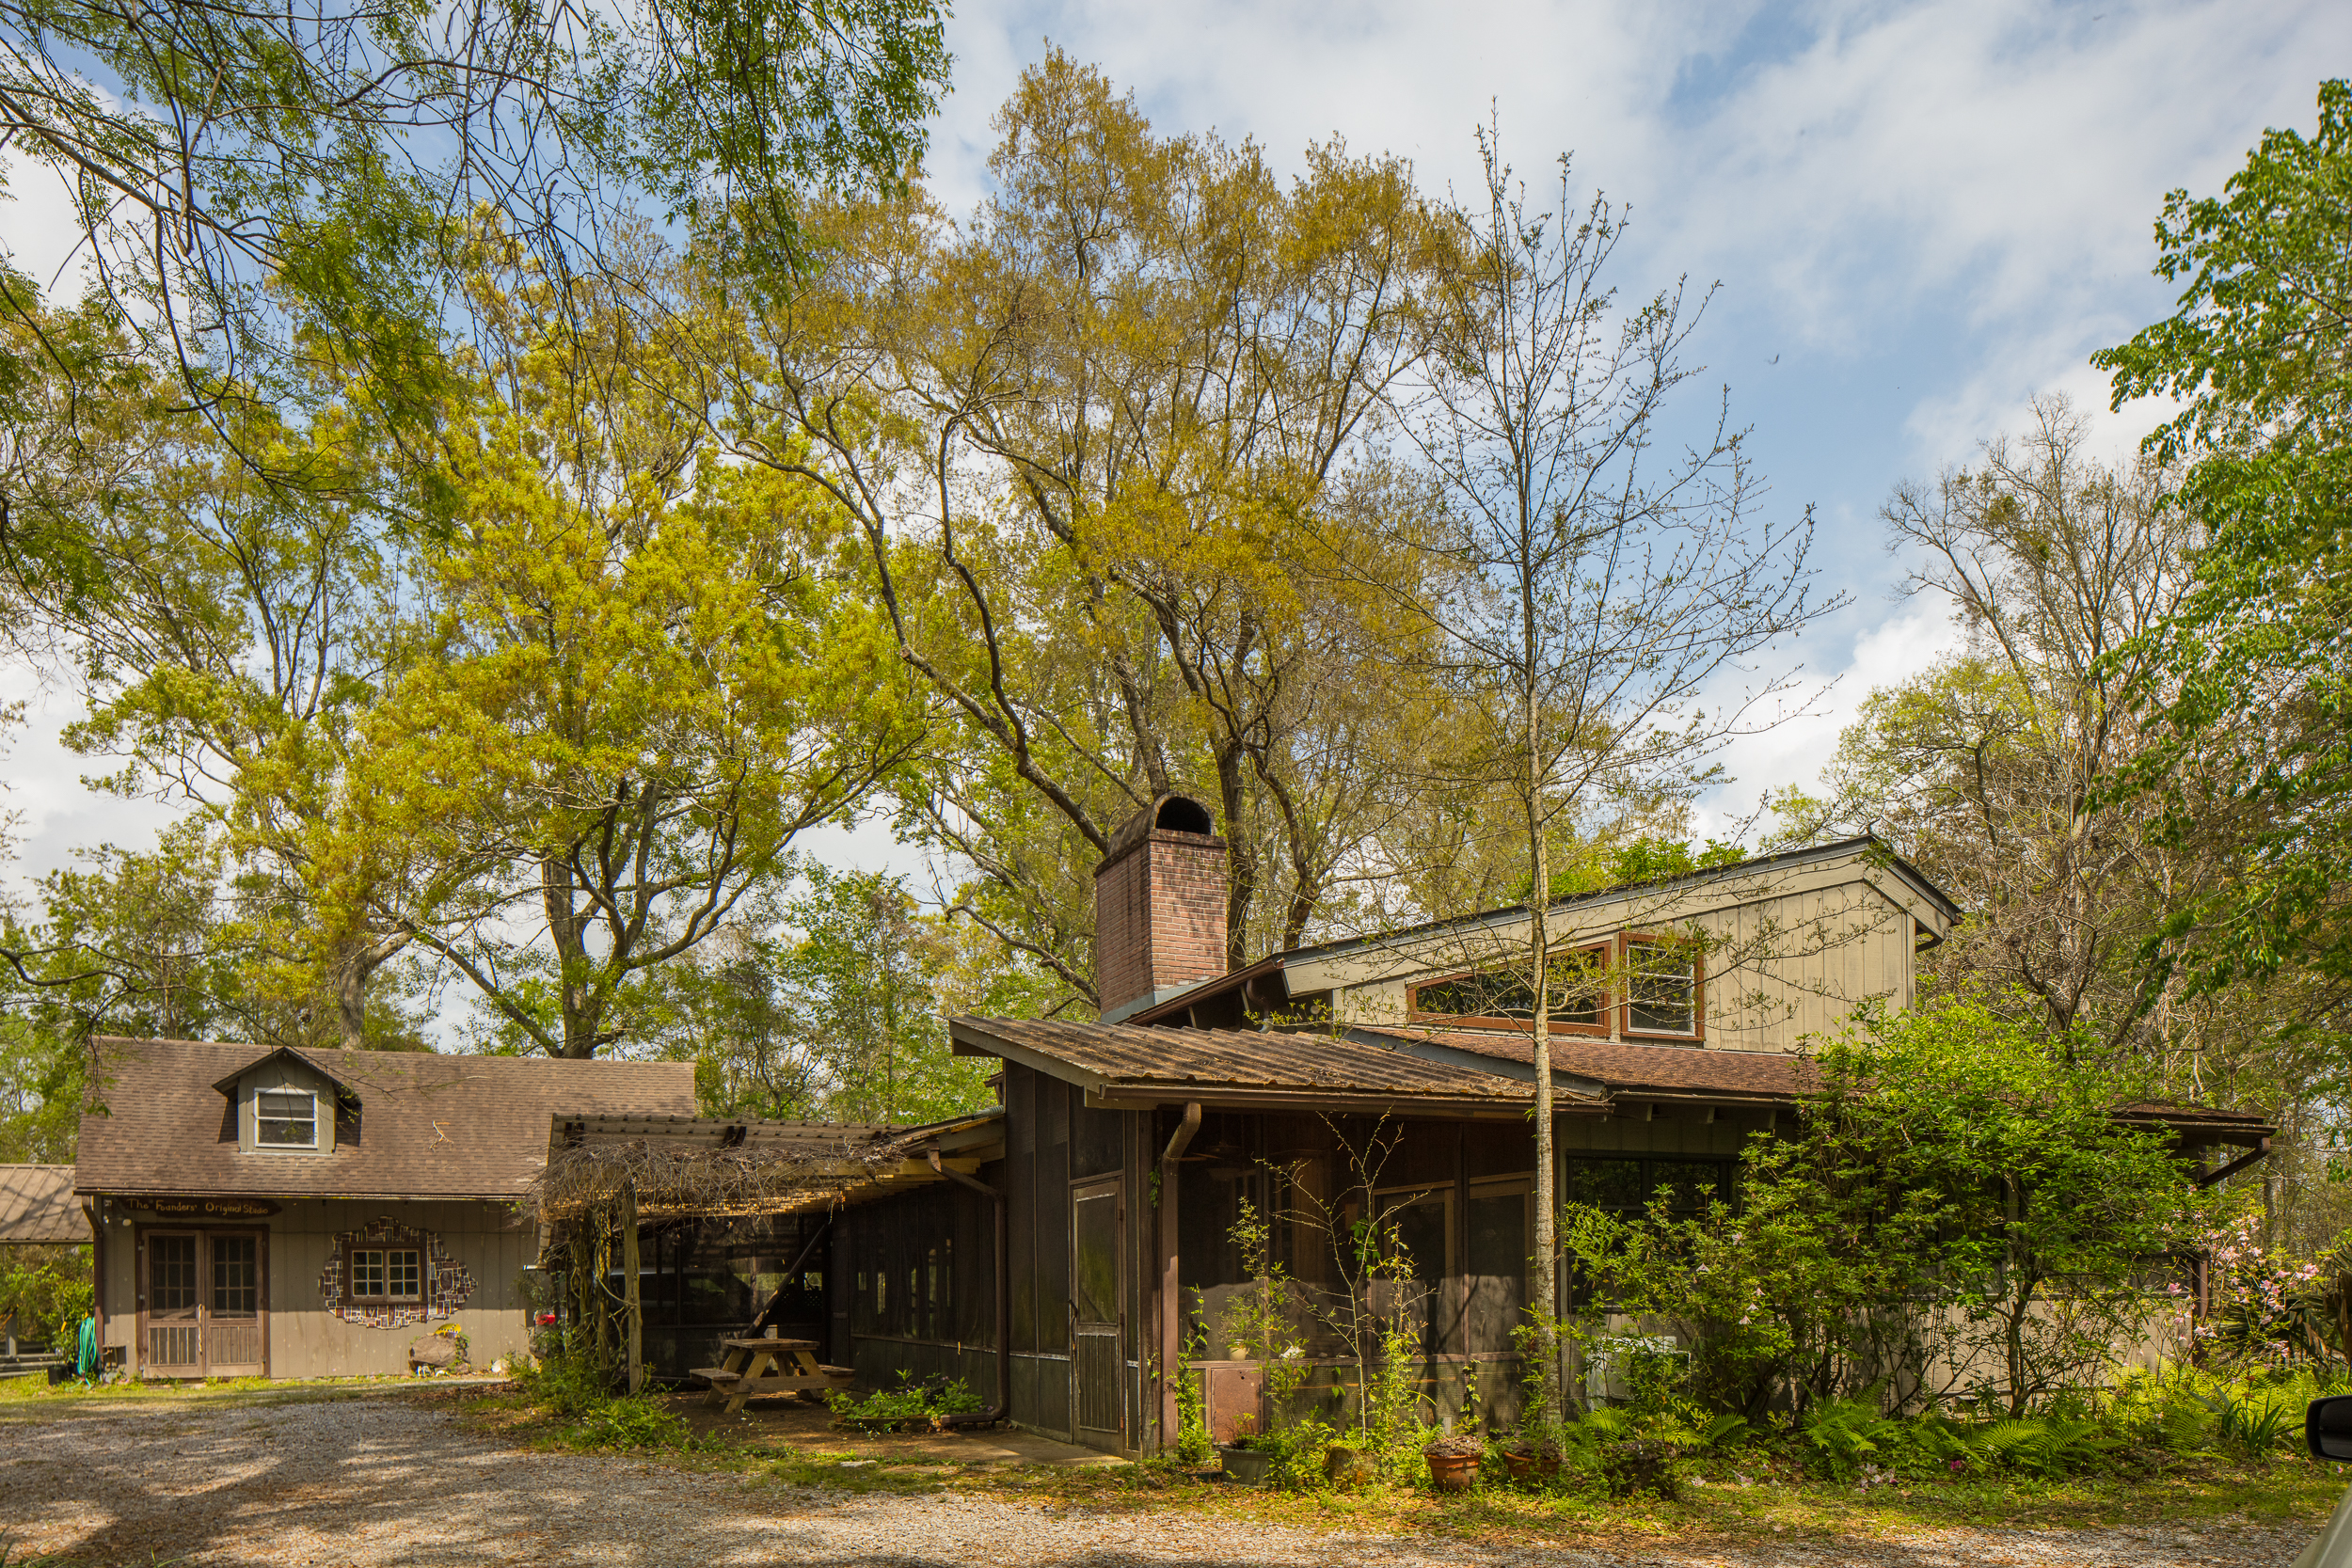 A Studio in the Woods provides residency for BIPOC writers in this paid residency.